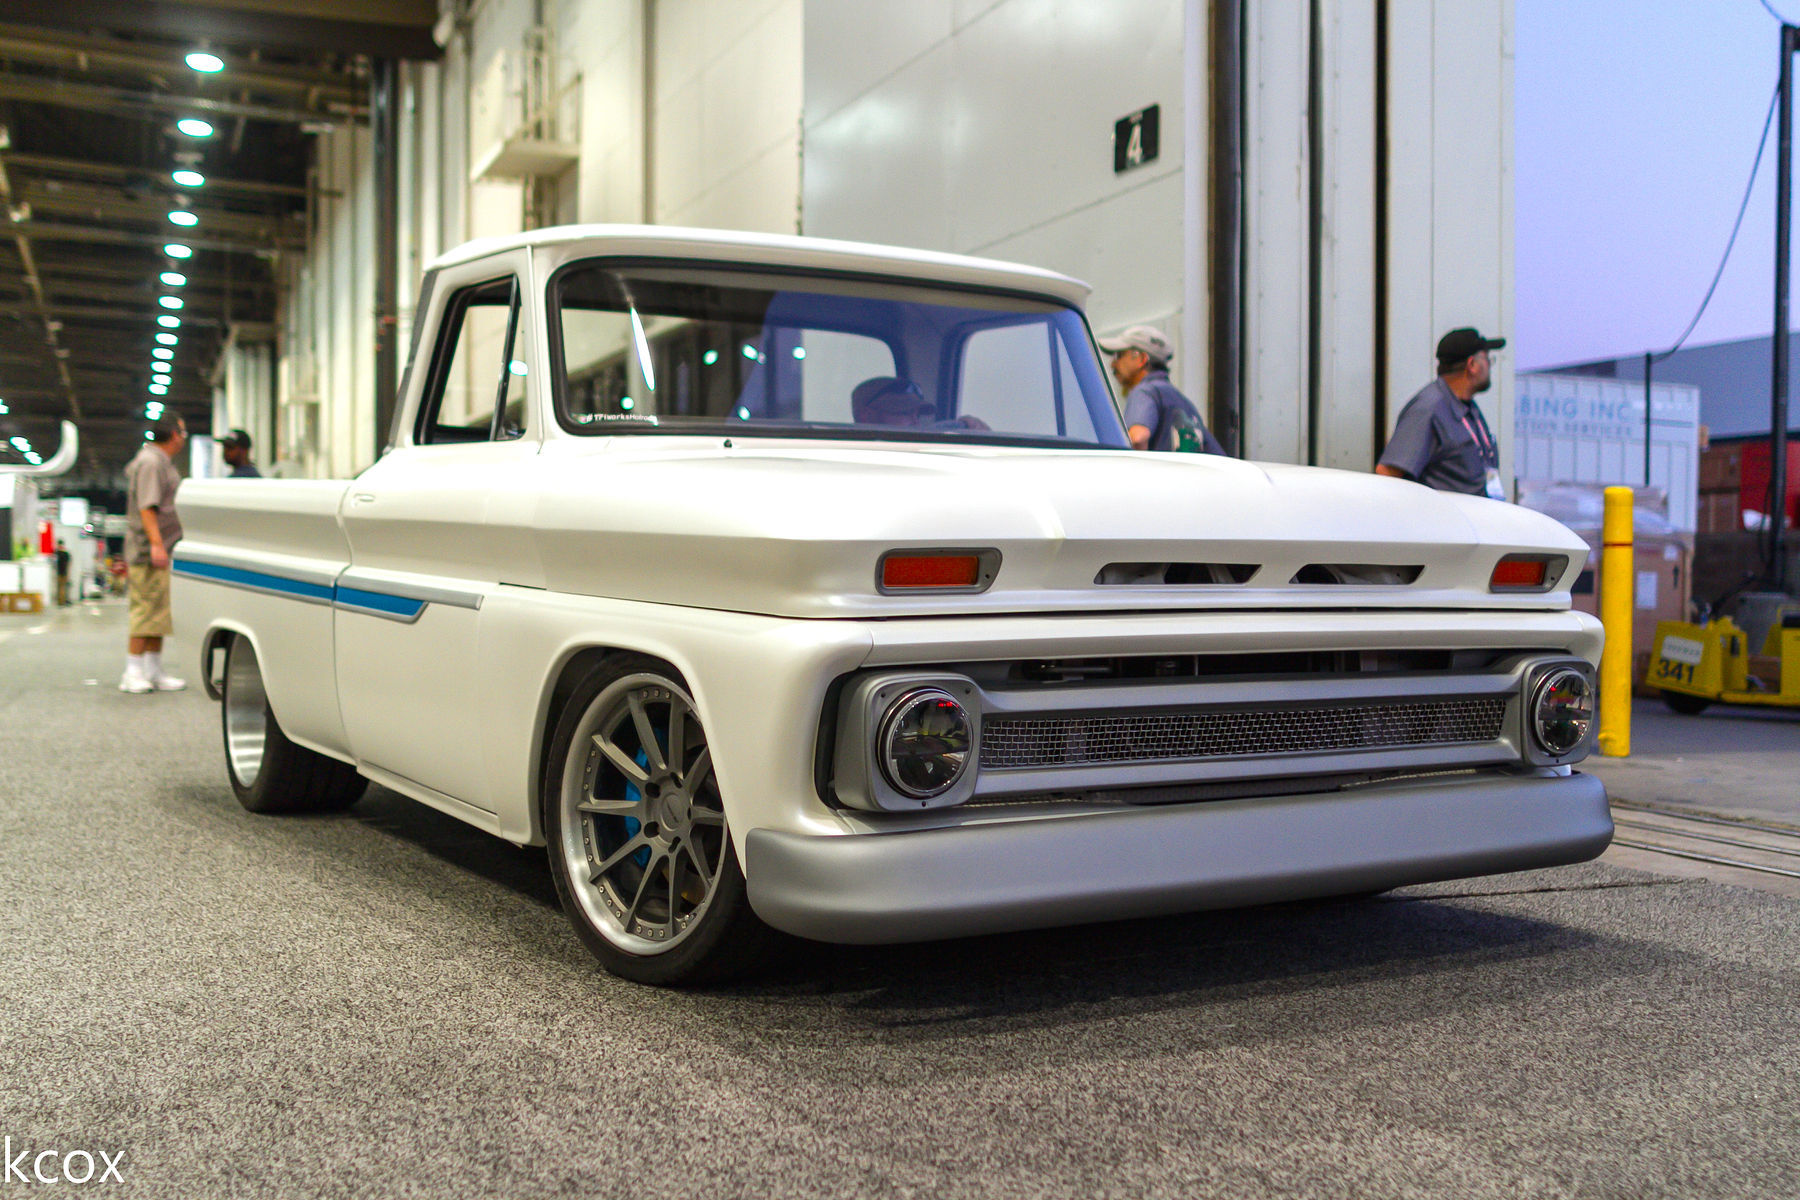 1966 Chevrolet C-10 | James Otto's C-10 Truck on Forgeline RB3C Wheels - Front View